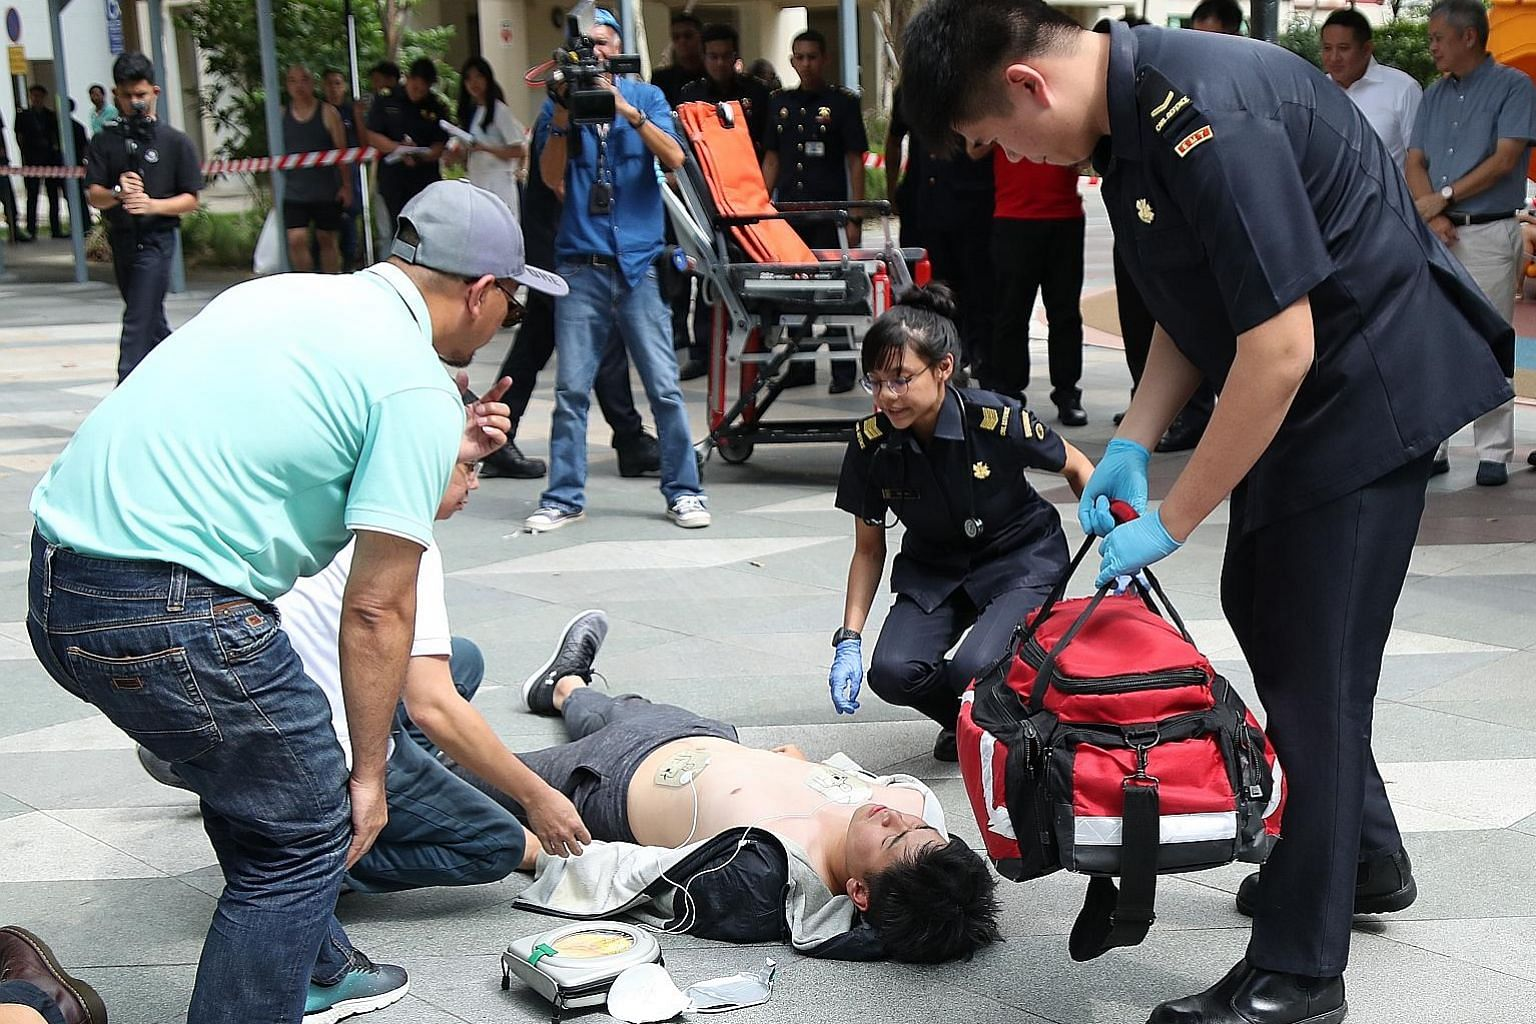 An HDT taxi driver (in light blue cap) and SCDF officers responding to an emergency during a scenario exercise at Kampung Admiralty yesterday, when the HDT Singapore Taxi-Singapore Heart Foundation AED-on-Wheels programme was launched.